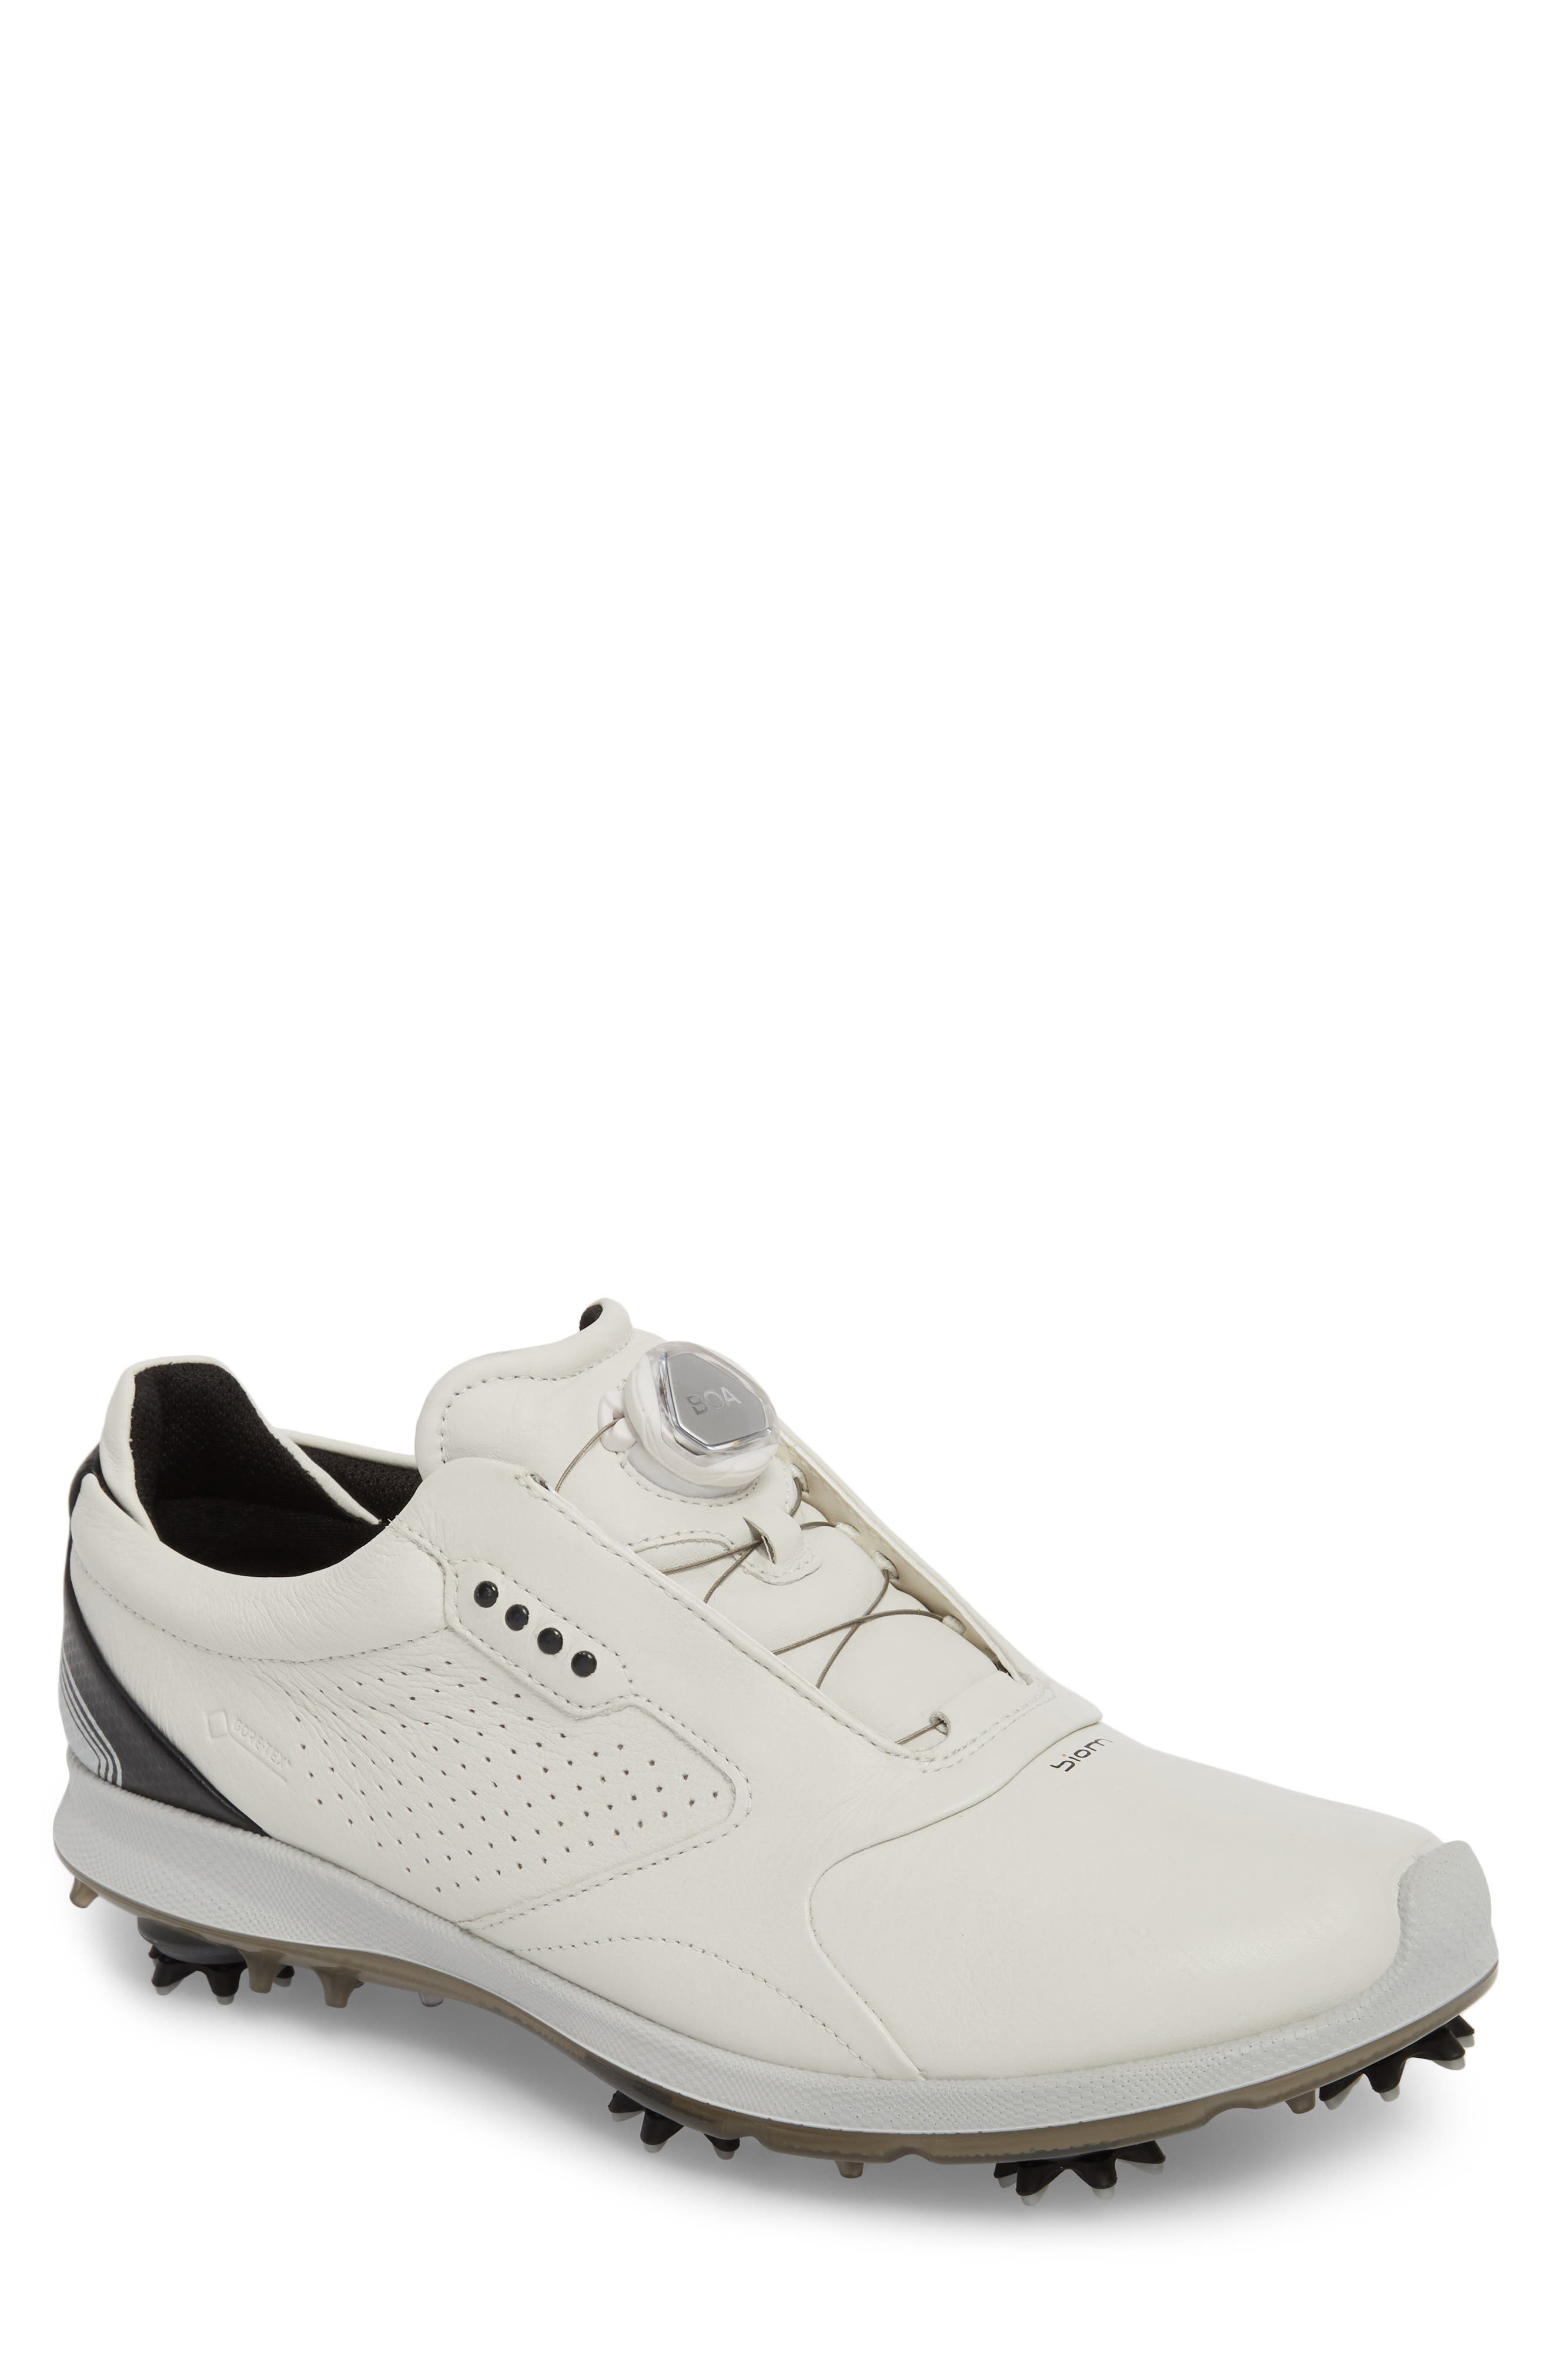 BIOM 2 BOA Gore-Tex<sup>®</sup> Golf Shoe,                         Main,                         color, White/ Black Leather